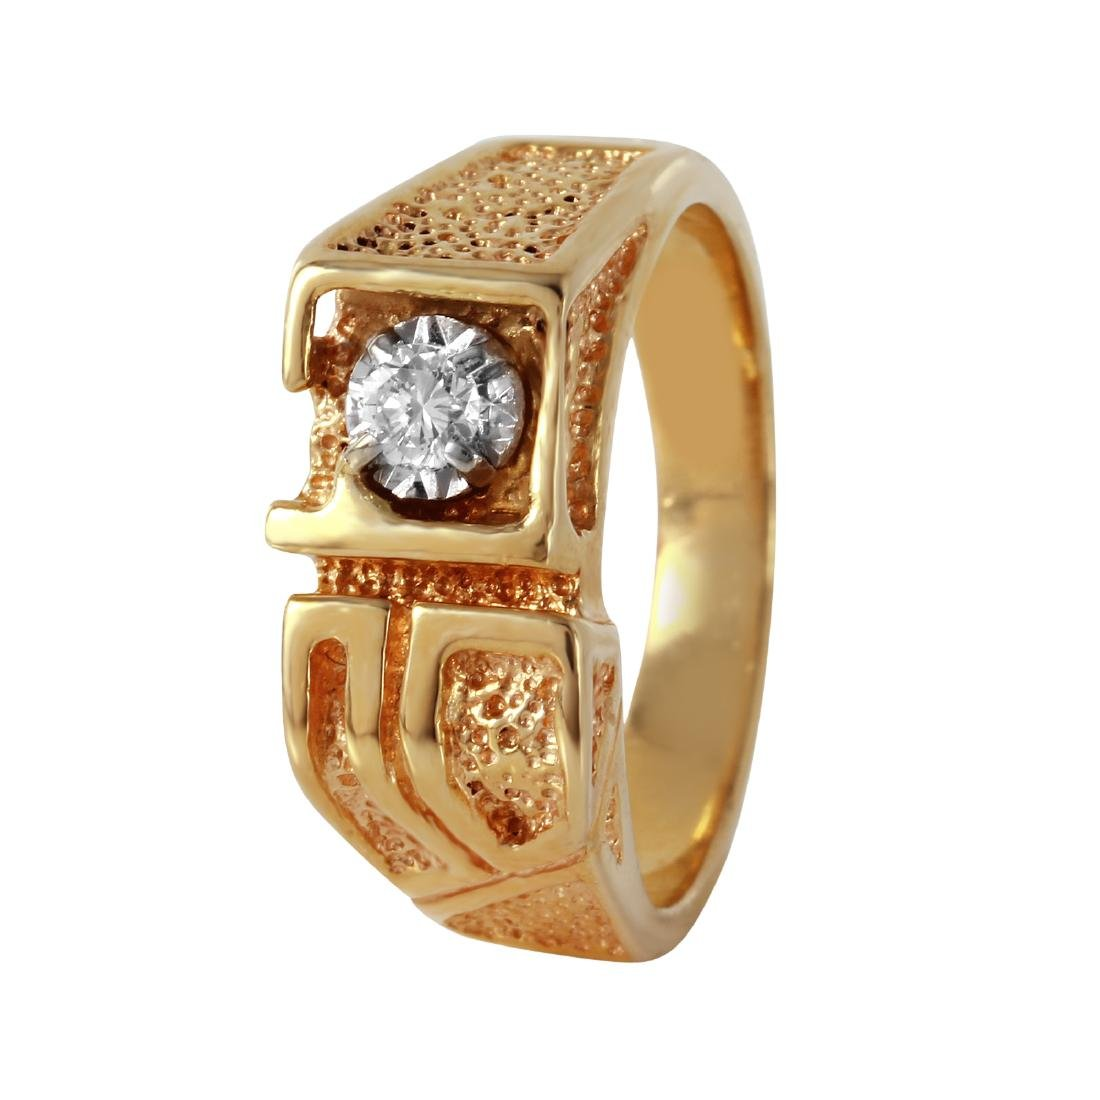 14KT Yellow Gold Diamond Men's Ring